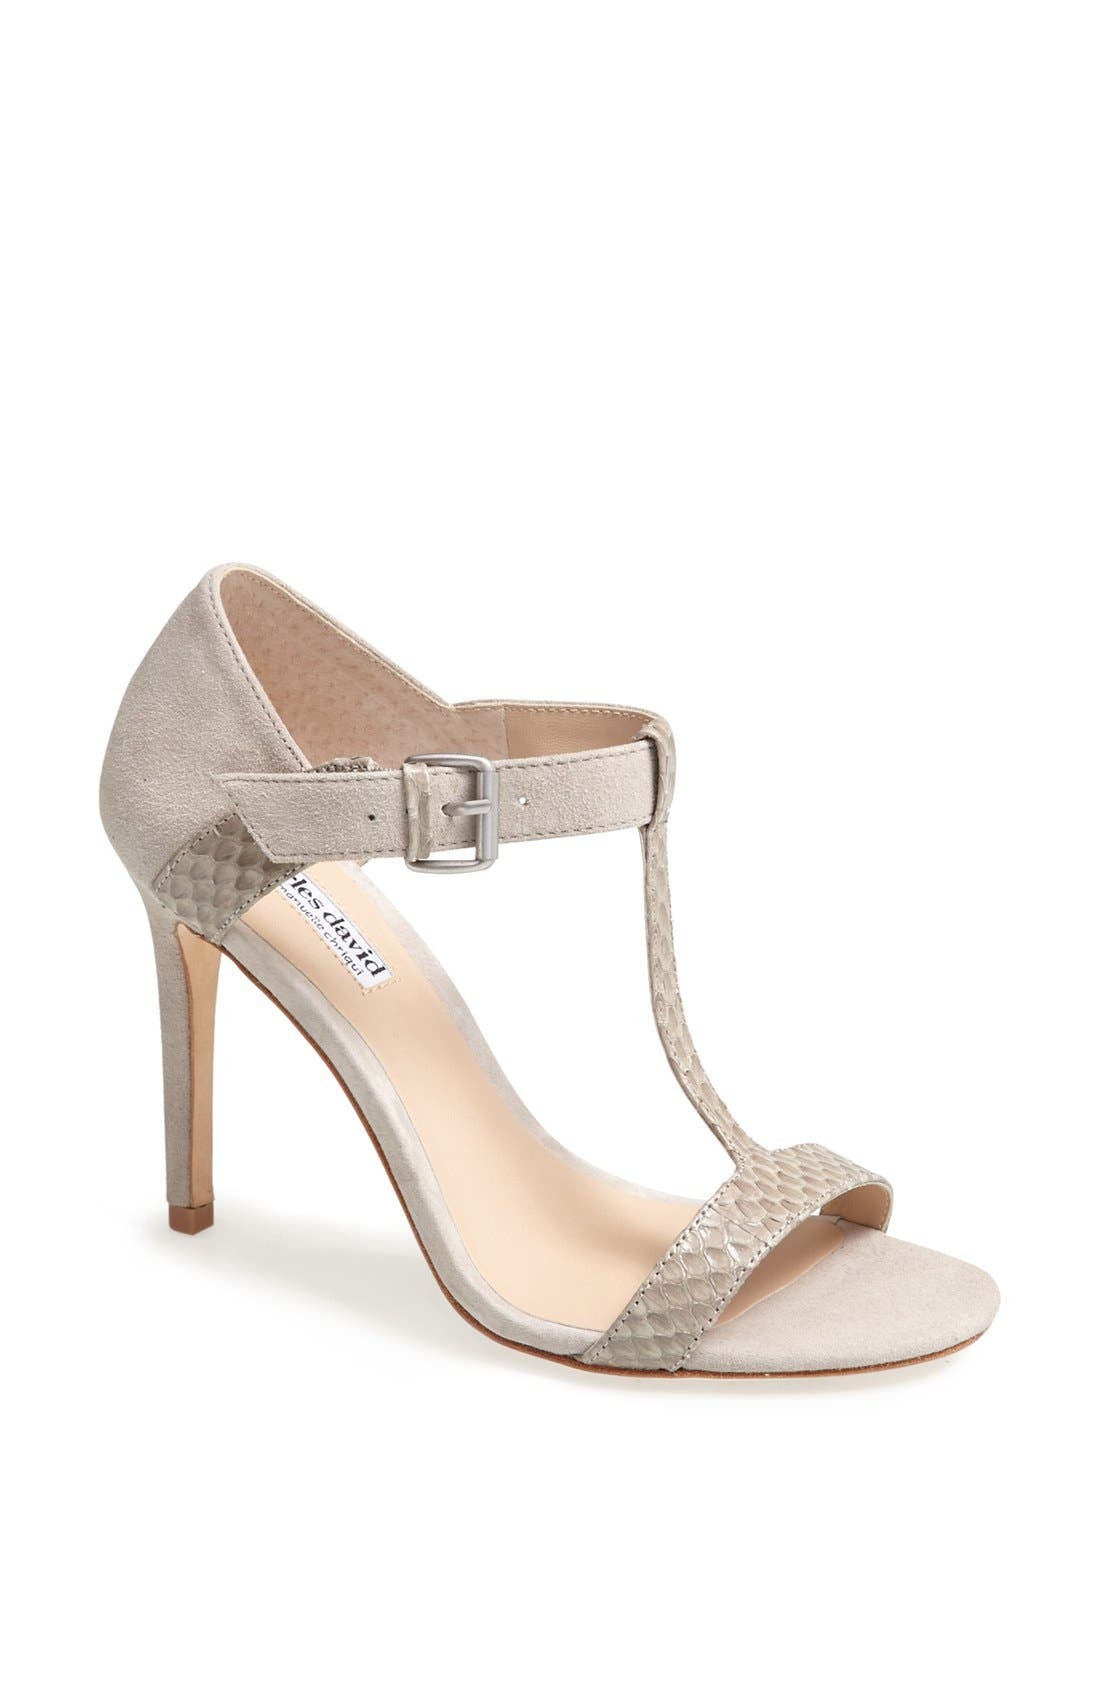 Alternate Image 1 Selected - Charles David 'Imana' Snake Embossed Leather & Suede Sandal